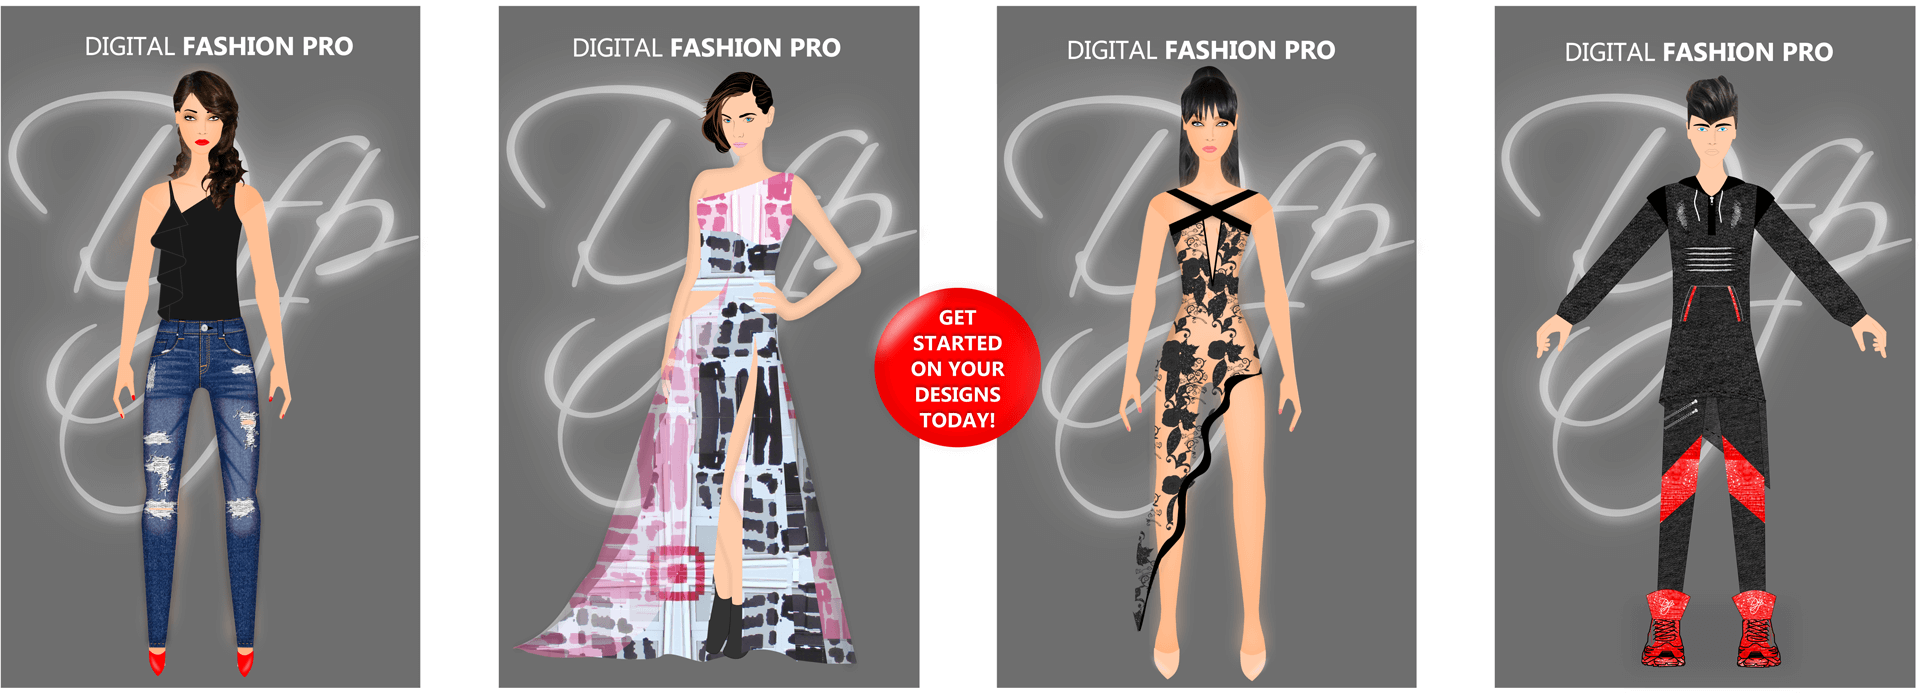 Fashion Design Software - Design Your Own Clothing - Digital Fashion Pro